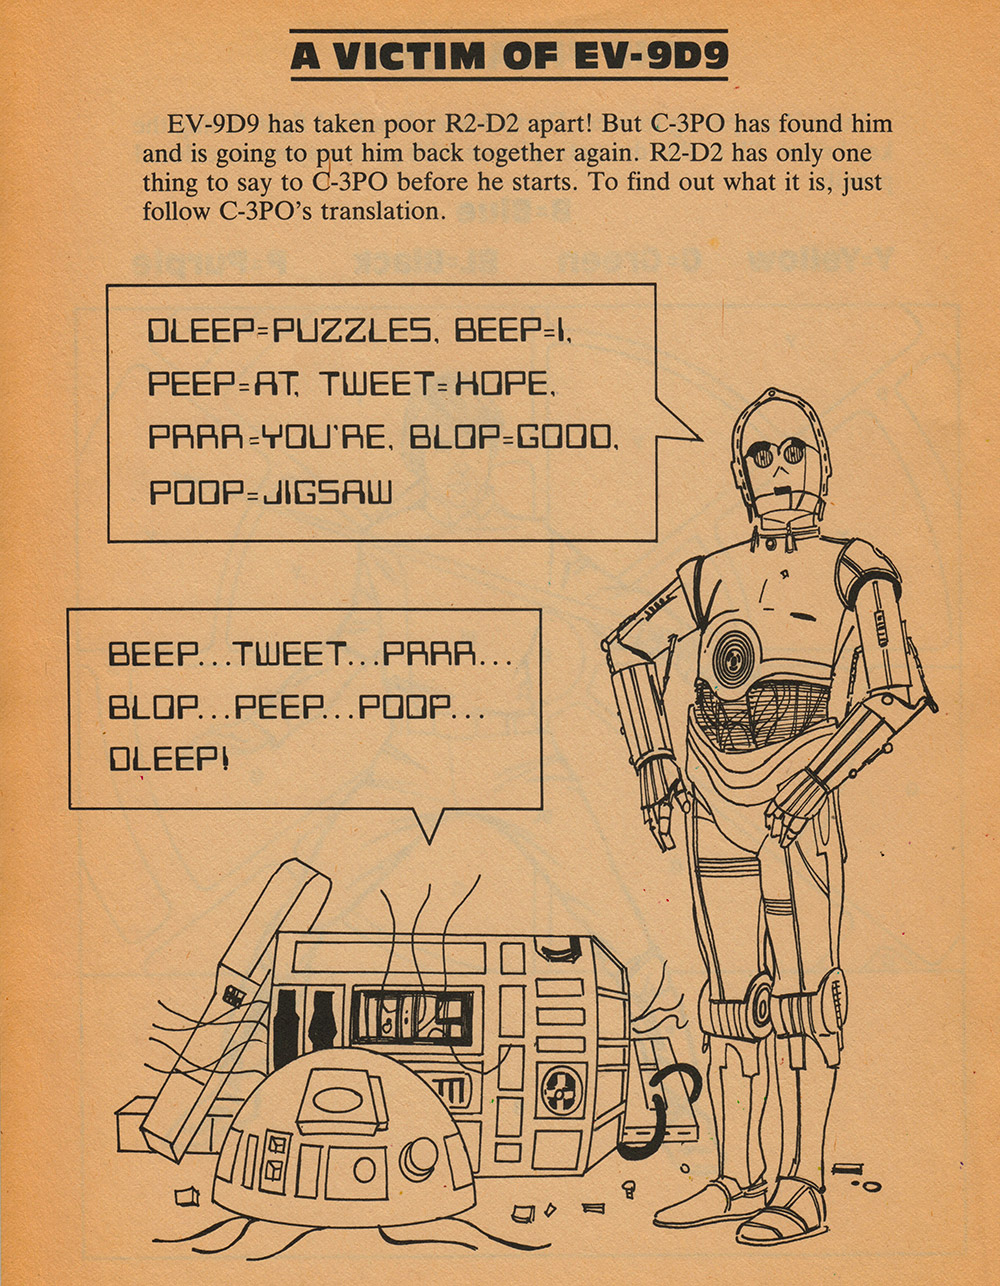 Return of the Jedi - Things to Do and Make A Victim of EV-9D9